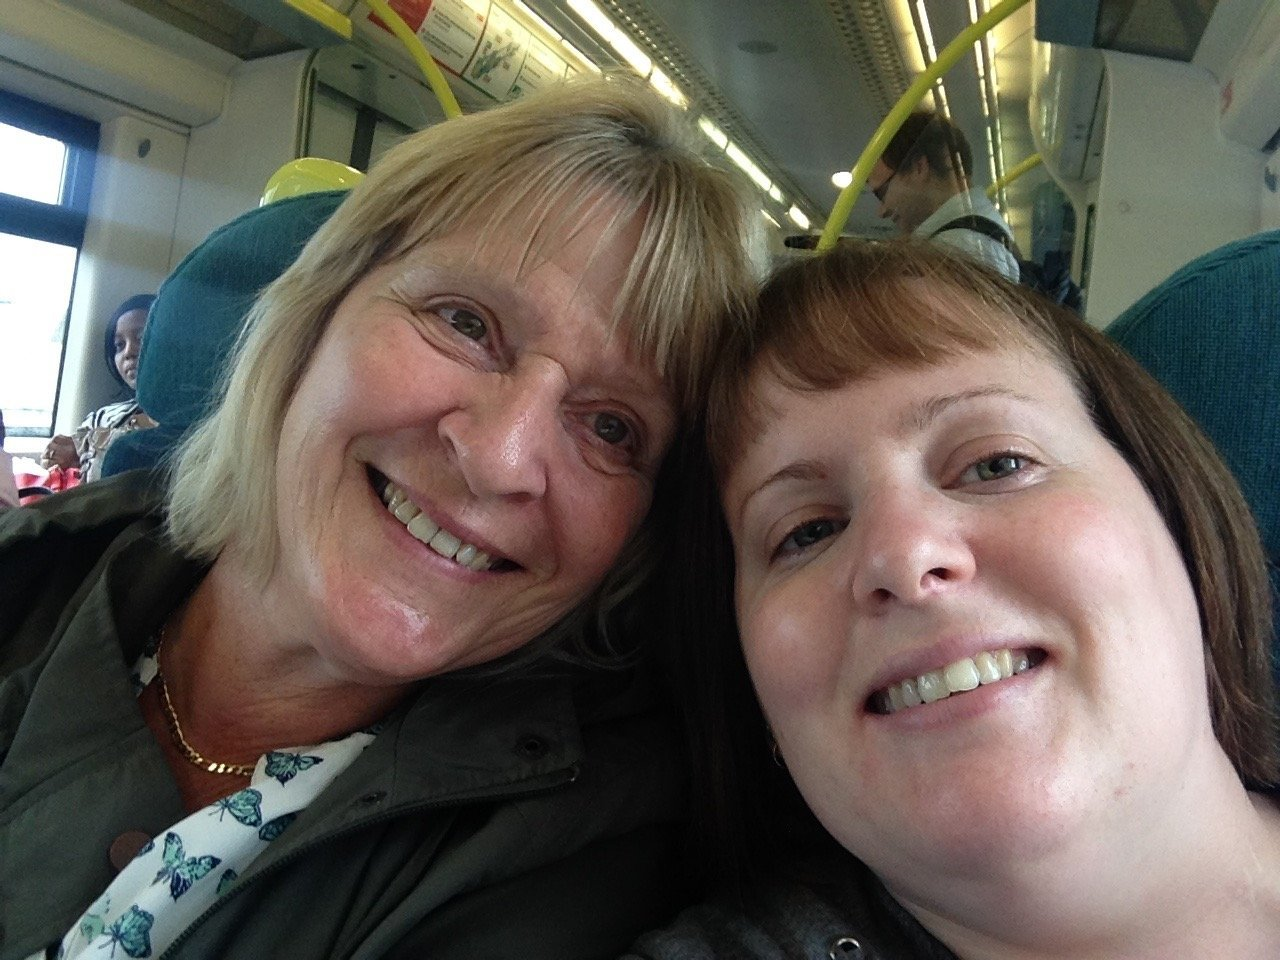 (l-r) Pat Lambert with her daughter Nikki Lambert on a train journey back from London after seeing show Matilda. ..Pictures of Nikki Lambert supplied by Pete Lambert. ...